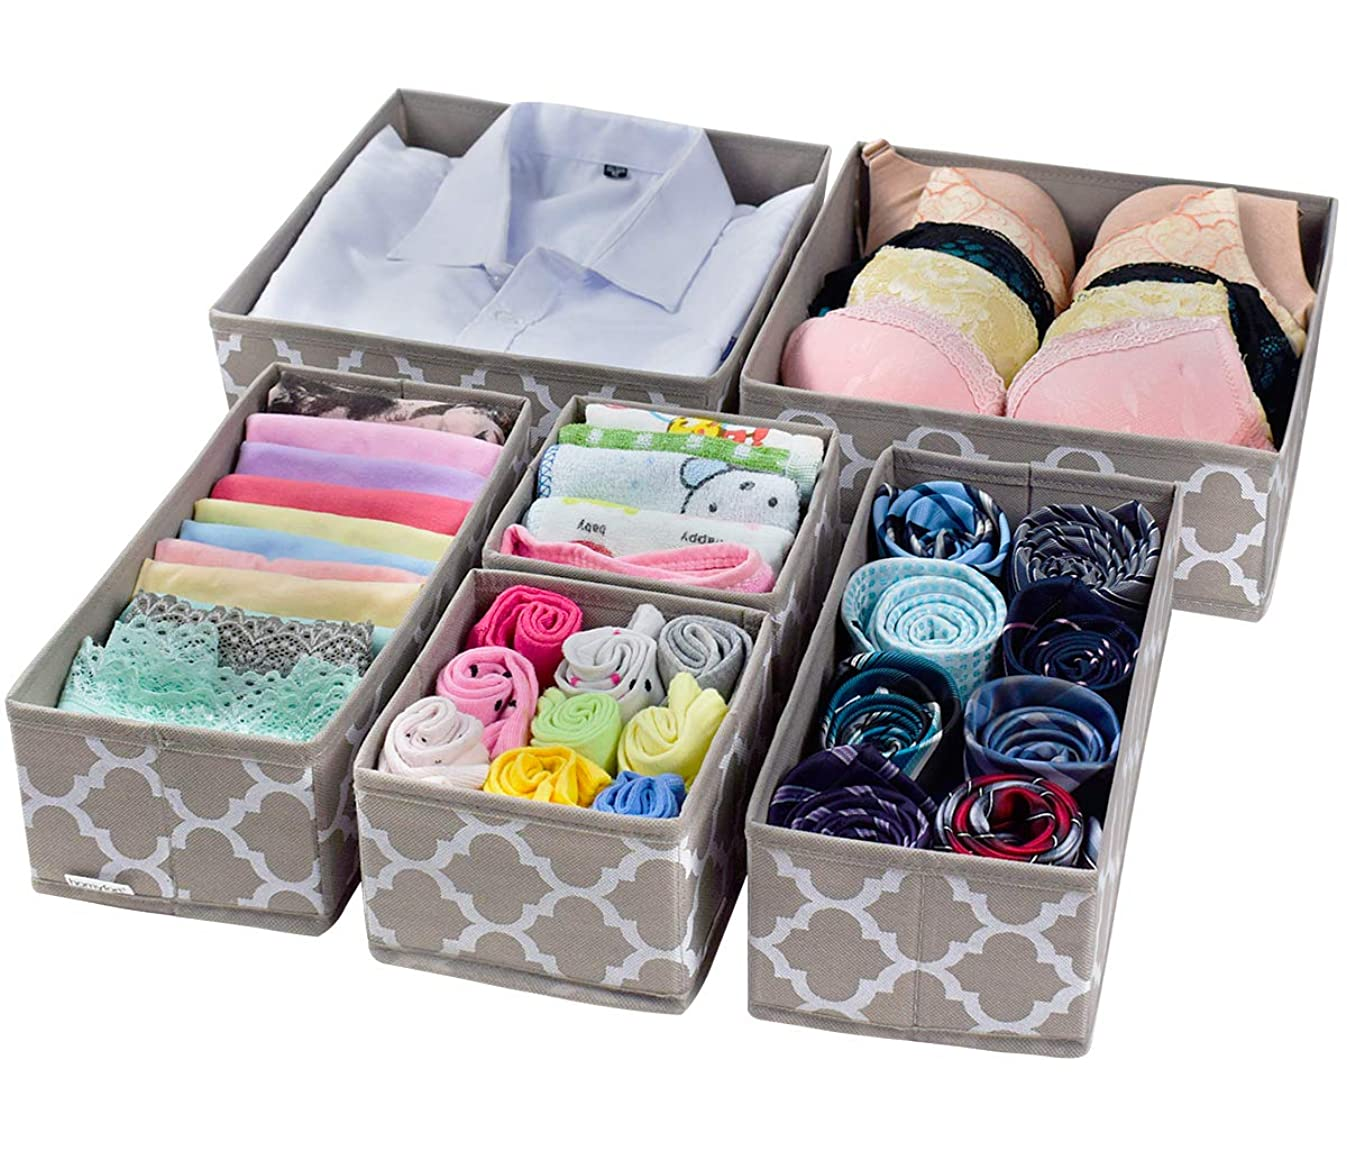 Foldable Cloth Storage Box Closet Dresser Drawer Organizer Cube Basket Bins Containers Divider with Drawers for Underwear, Bras, Socks, Ties, Scarves, Set of 6 Light Coffee with White Lantern Pattern